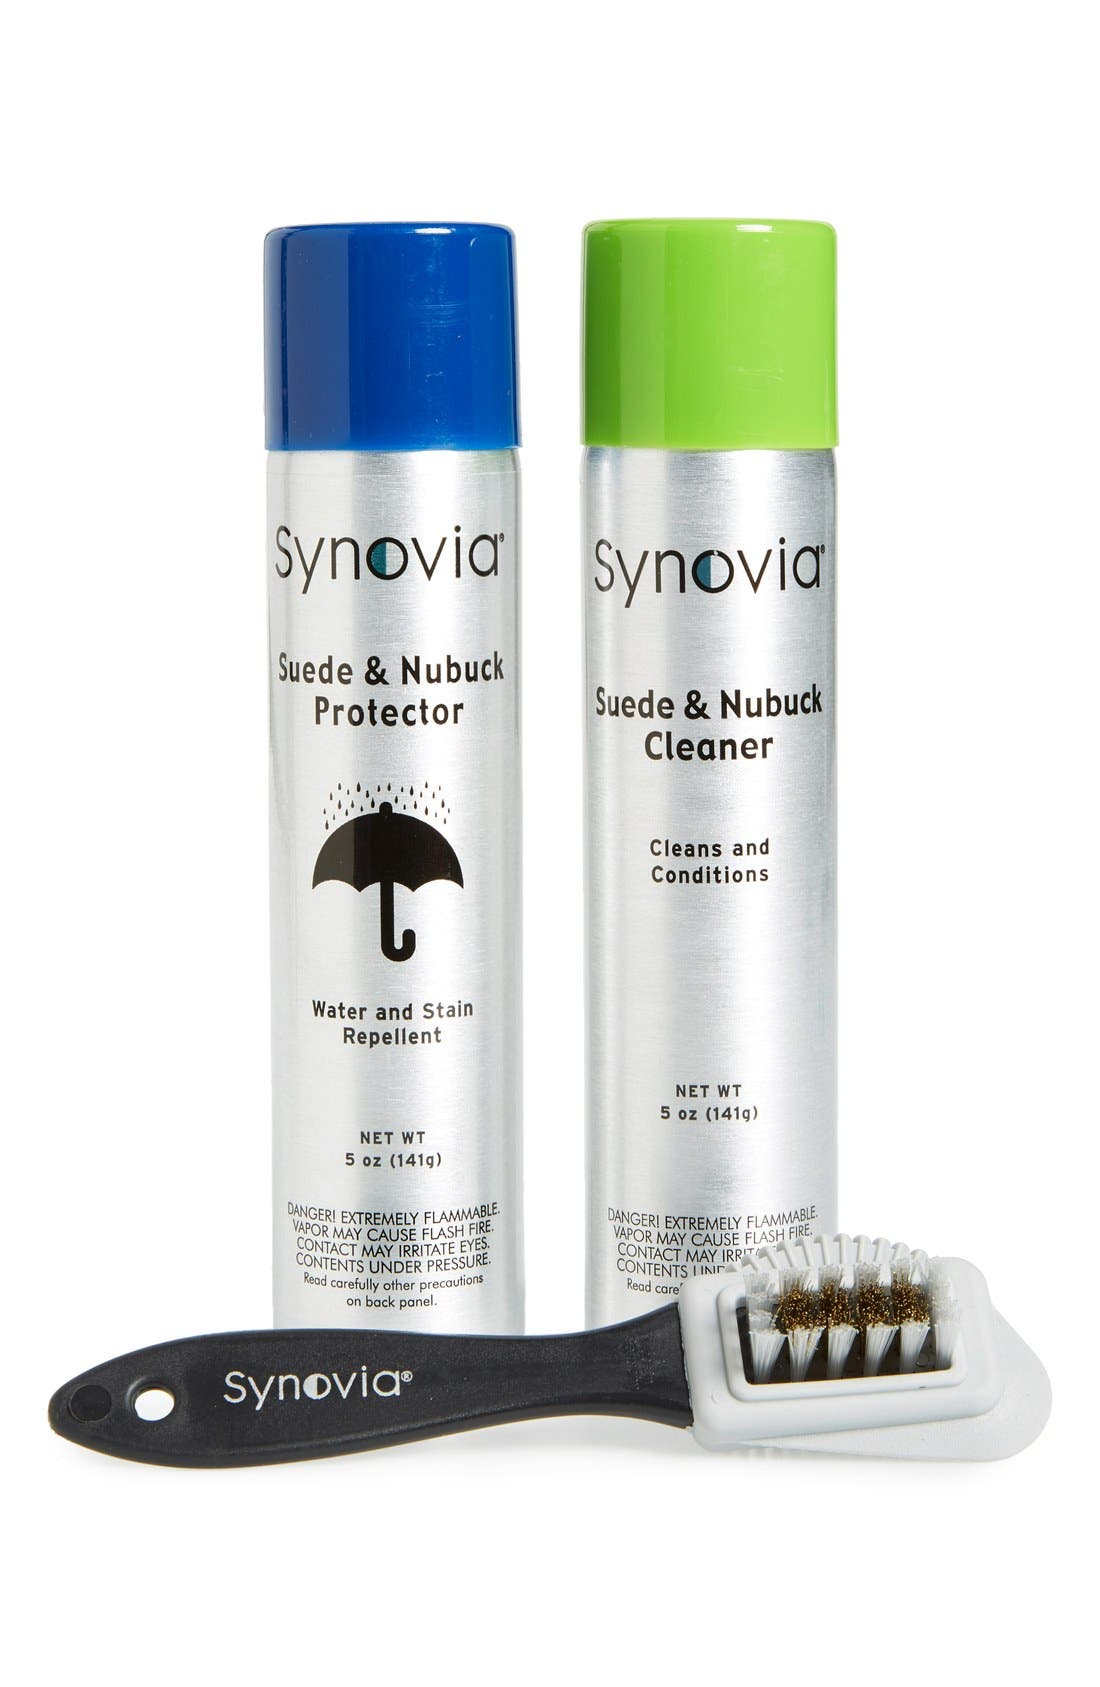 Synovia Suede Cleaning & Protection Kit